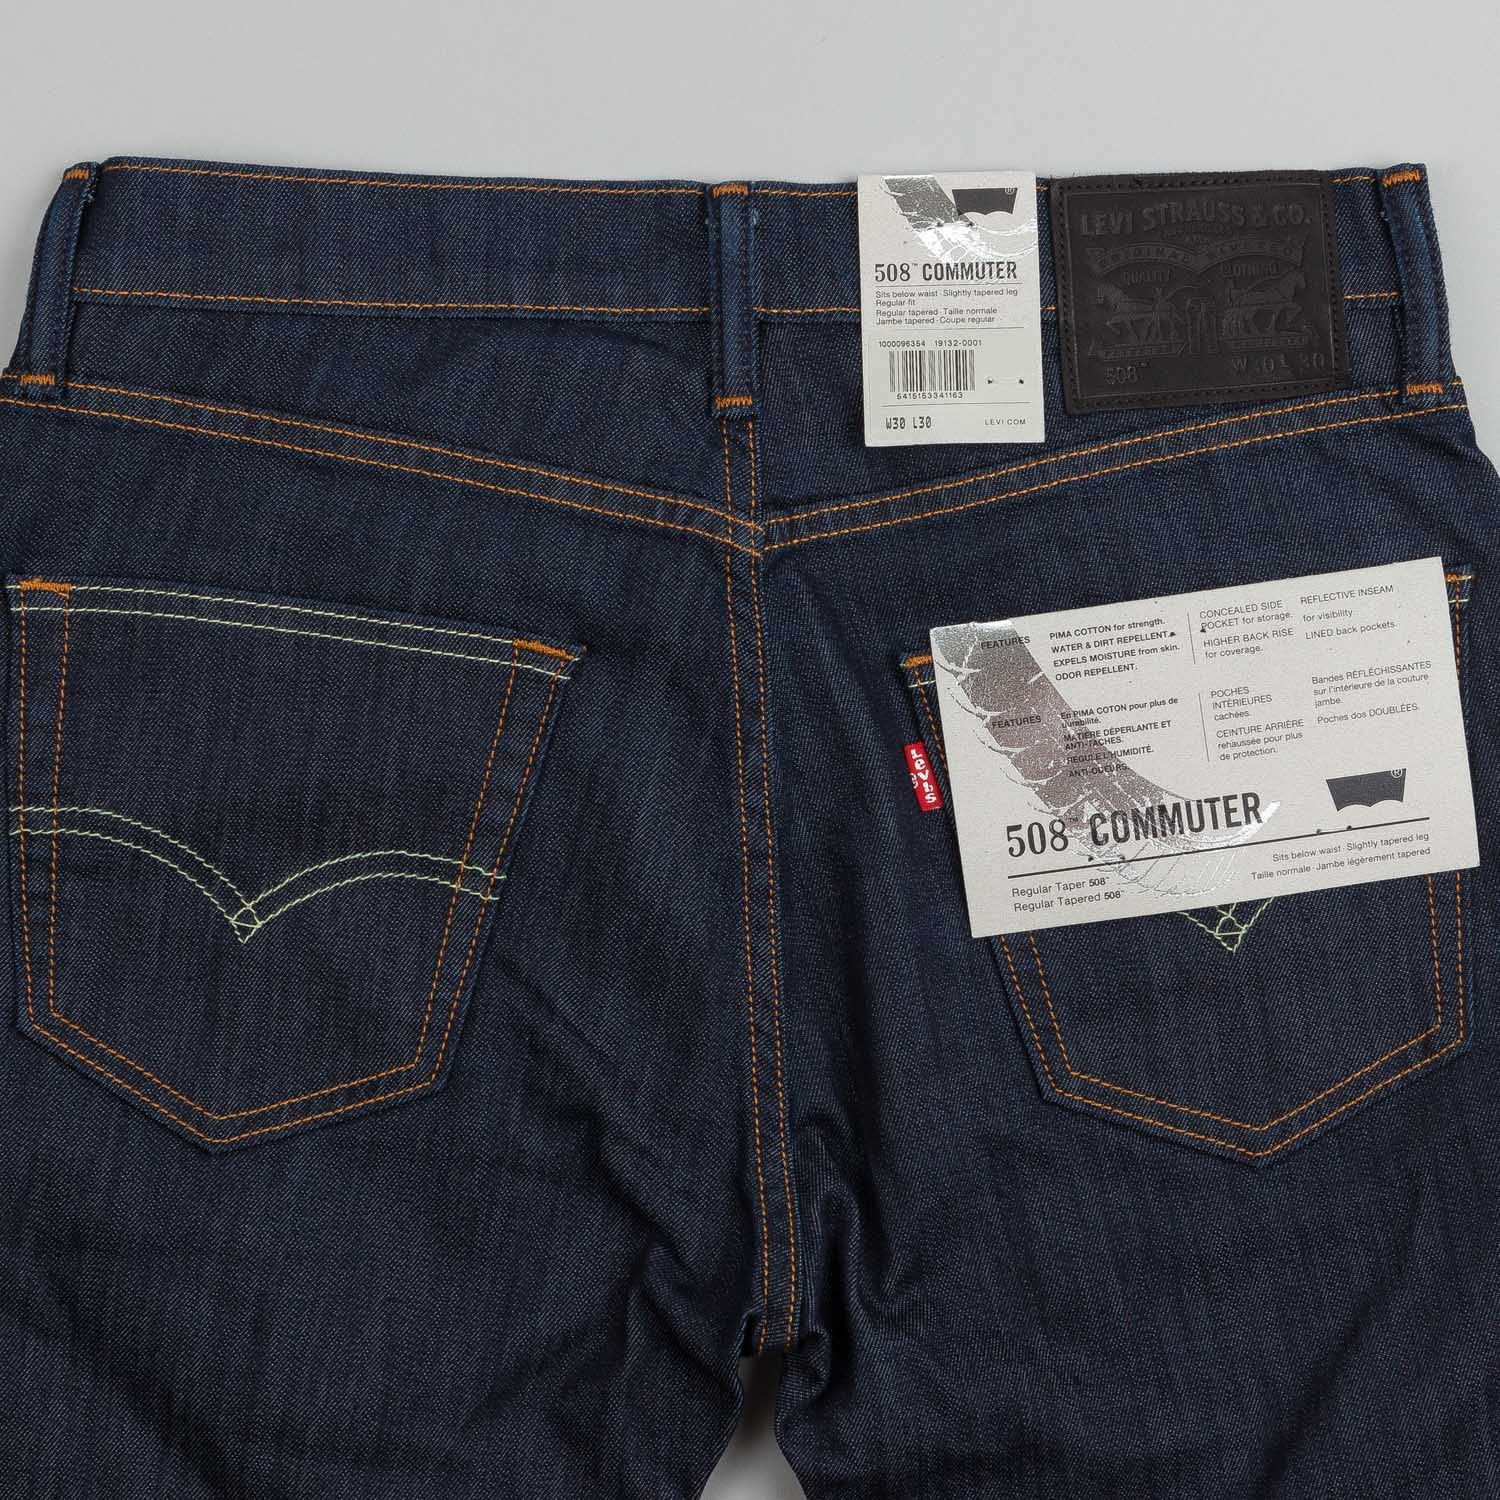 Levi's® Commuter 508 Jeans Indigo Denim Rigid